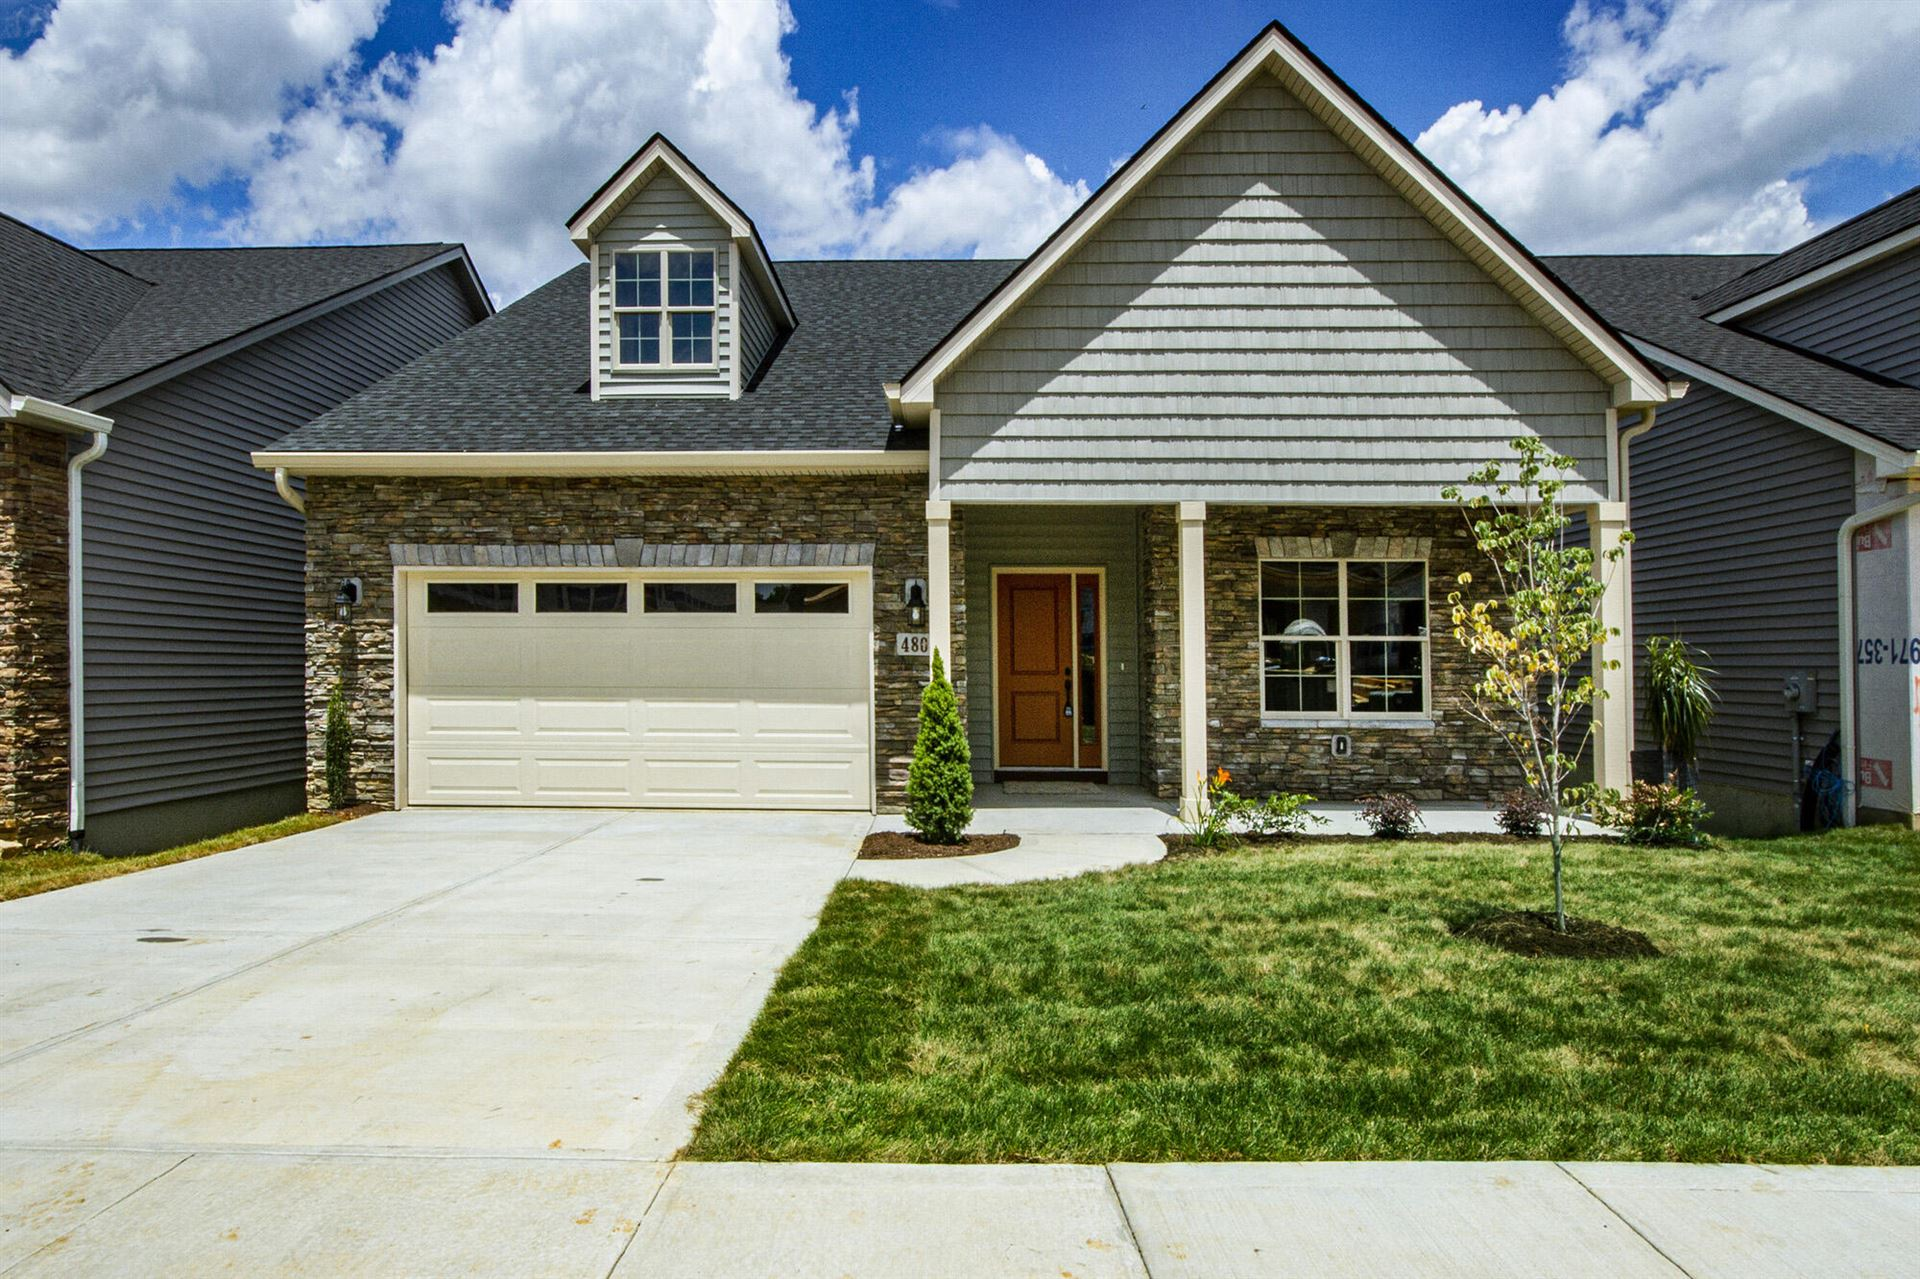 Photo for 4804 Willow Bluff Circle, Knoxville, TN 37914 (MLS # 1129505)